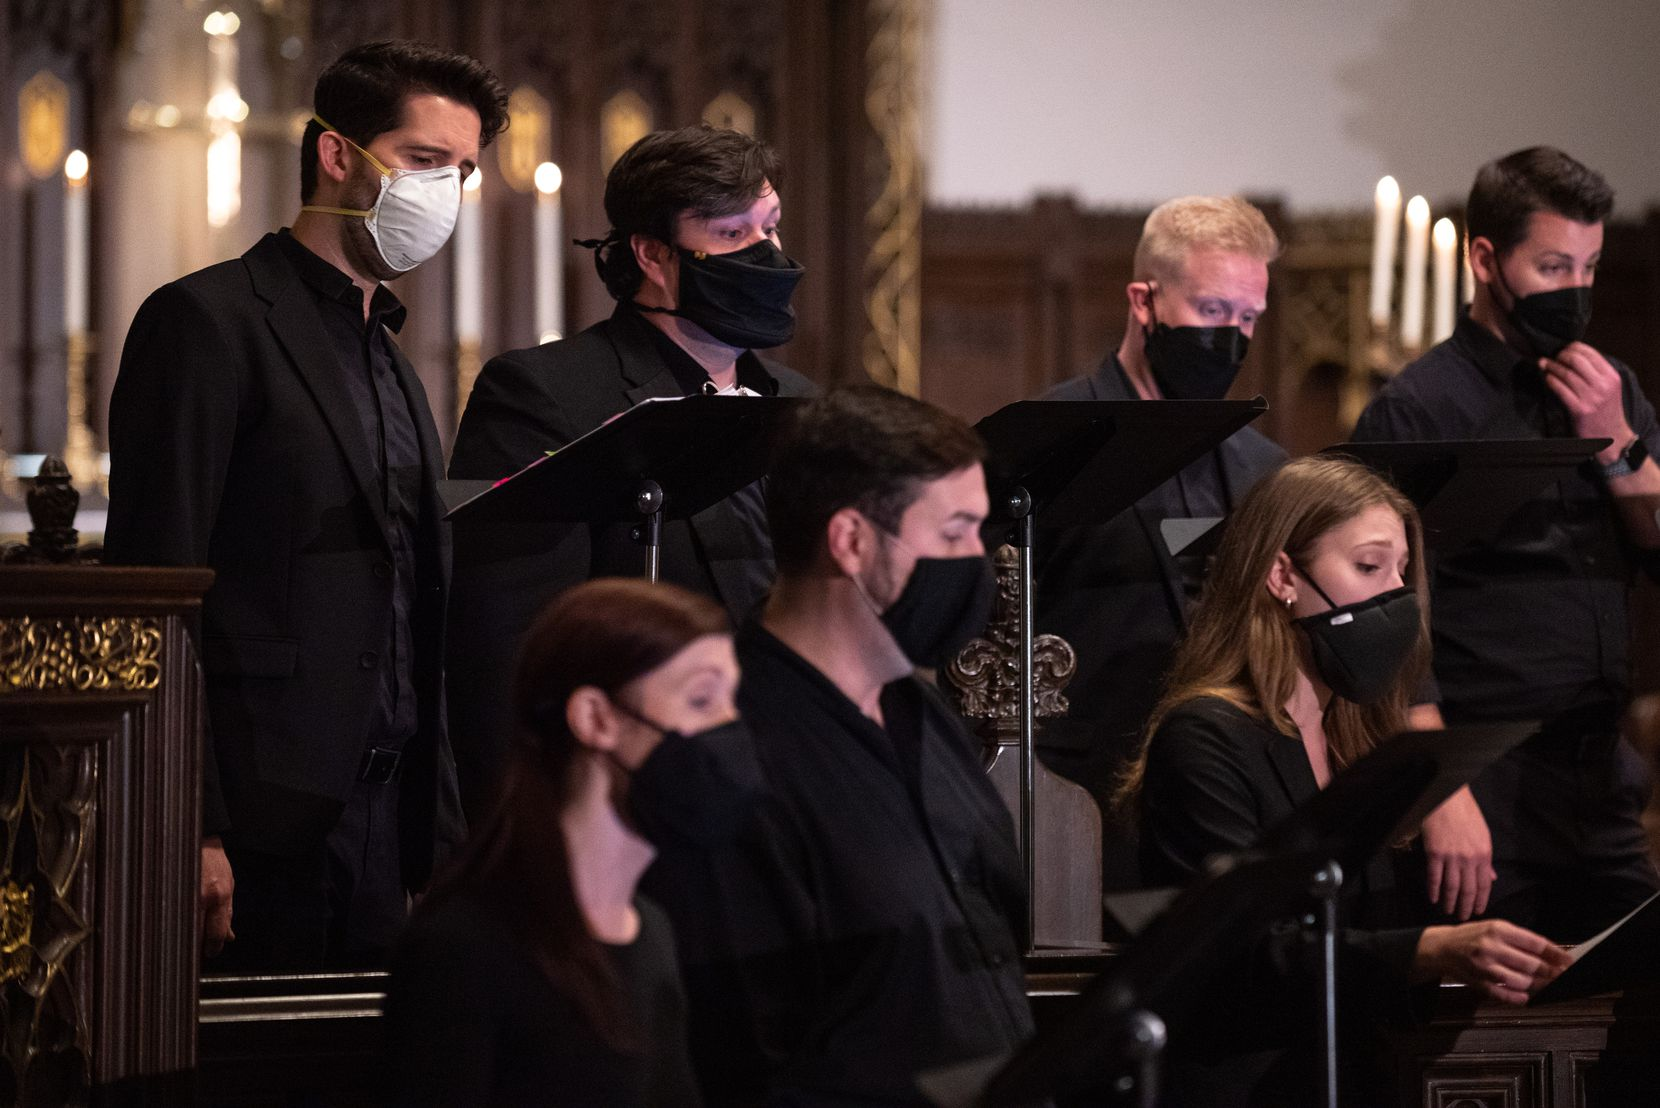 Chamber choir Incarnatus was somewhat muffled by their masks during a performance at Church of the Incarnation in Dallas.